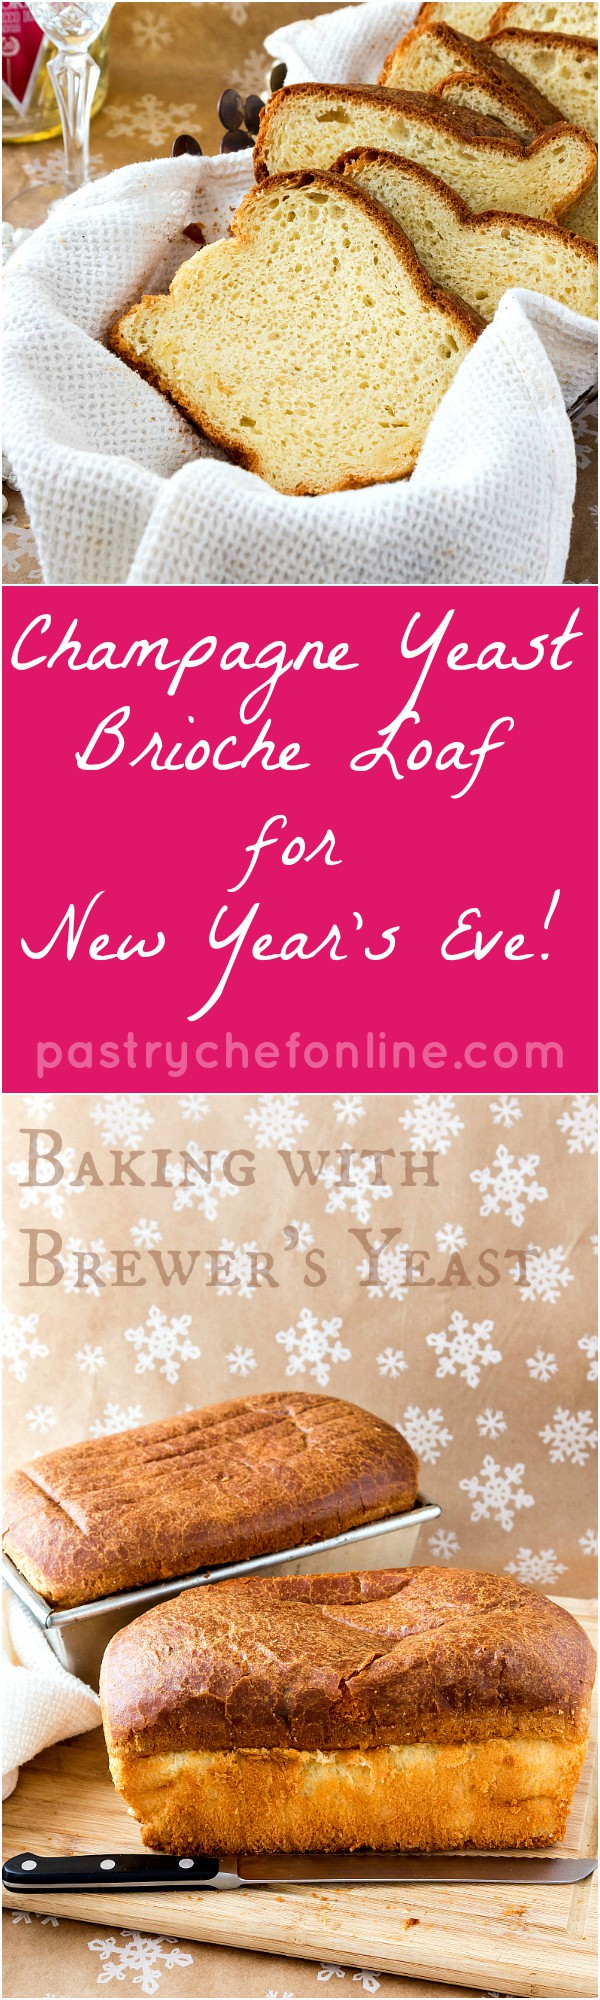 This champagne yeast brioche loaf recipe yields a rich, buttery, tender, and wonderful loaf of brioche. Using champagne yeast in the dough makes this the perfect bread to serve at your New Year's Eve party. Enjoy!   pastrychefonline.com